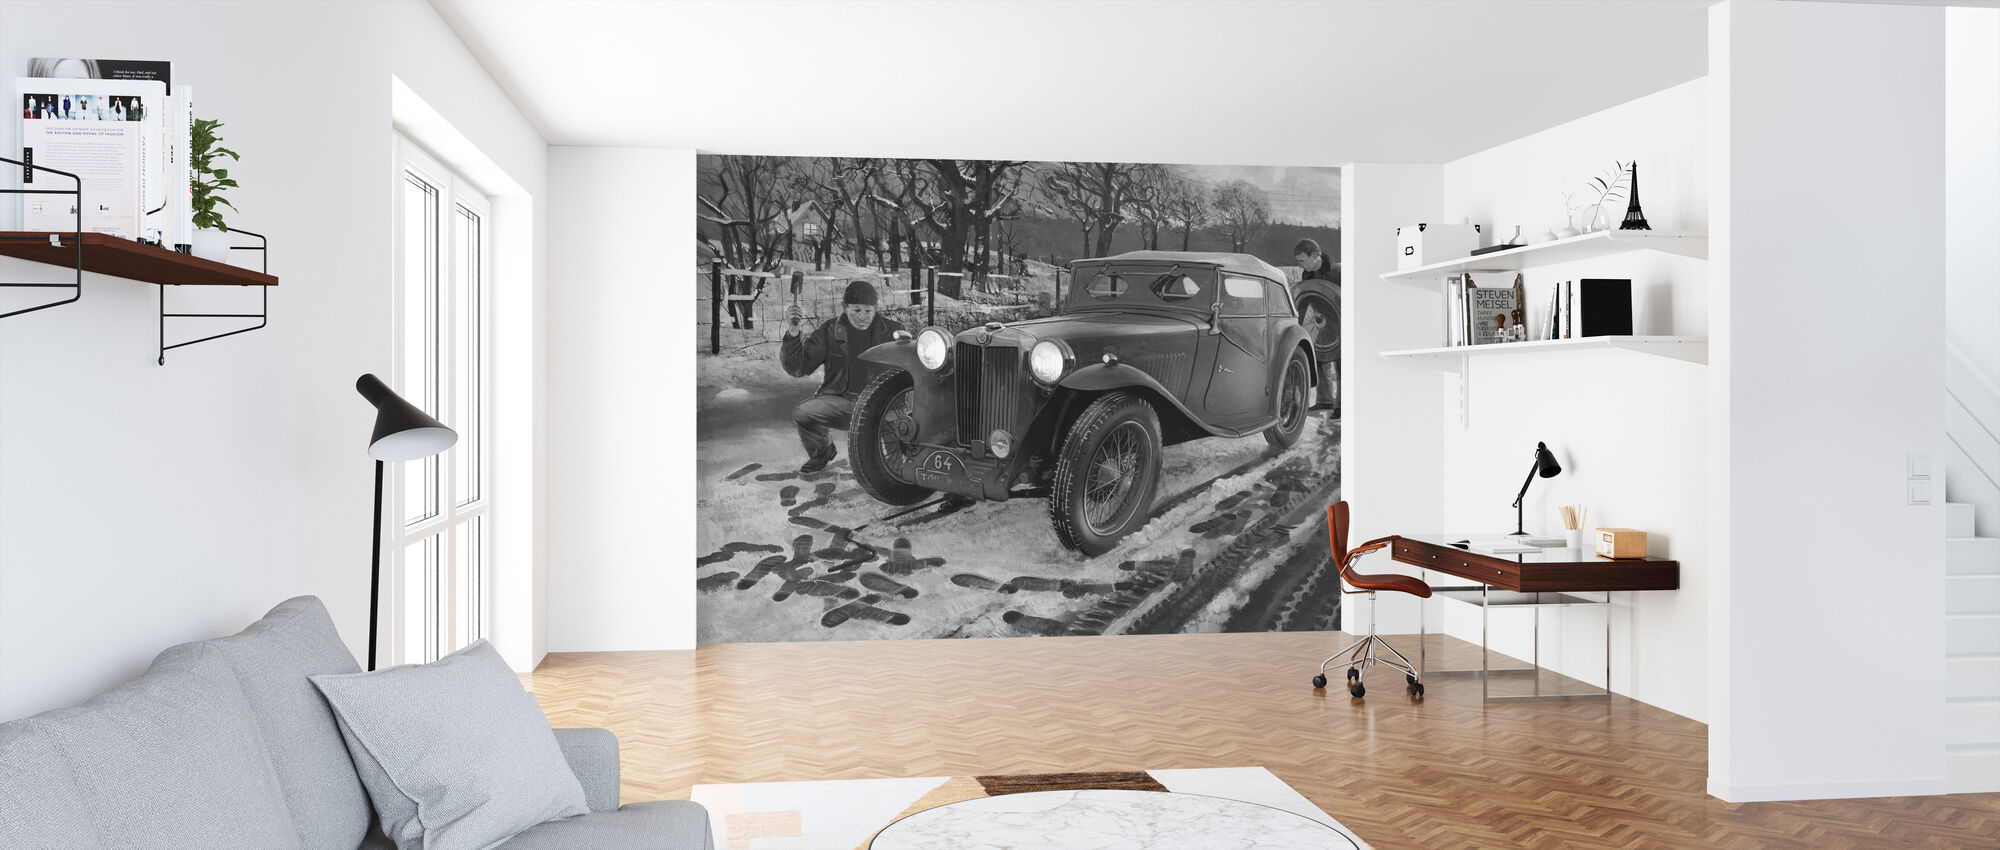 Winter Rally BW - Wallpaper - Office